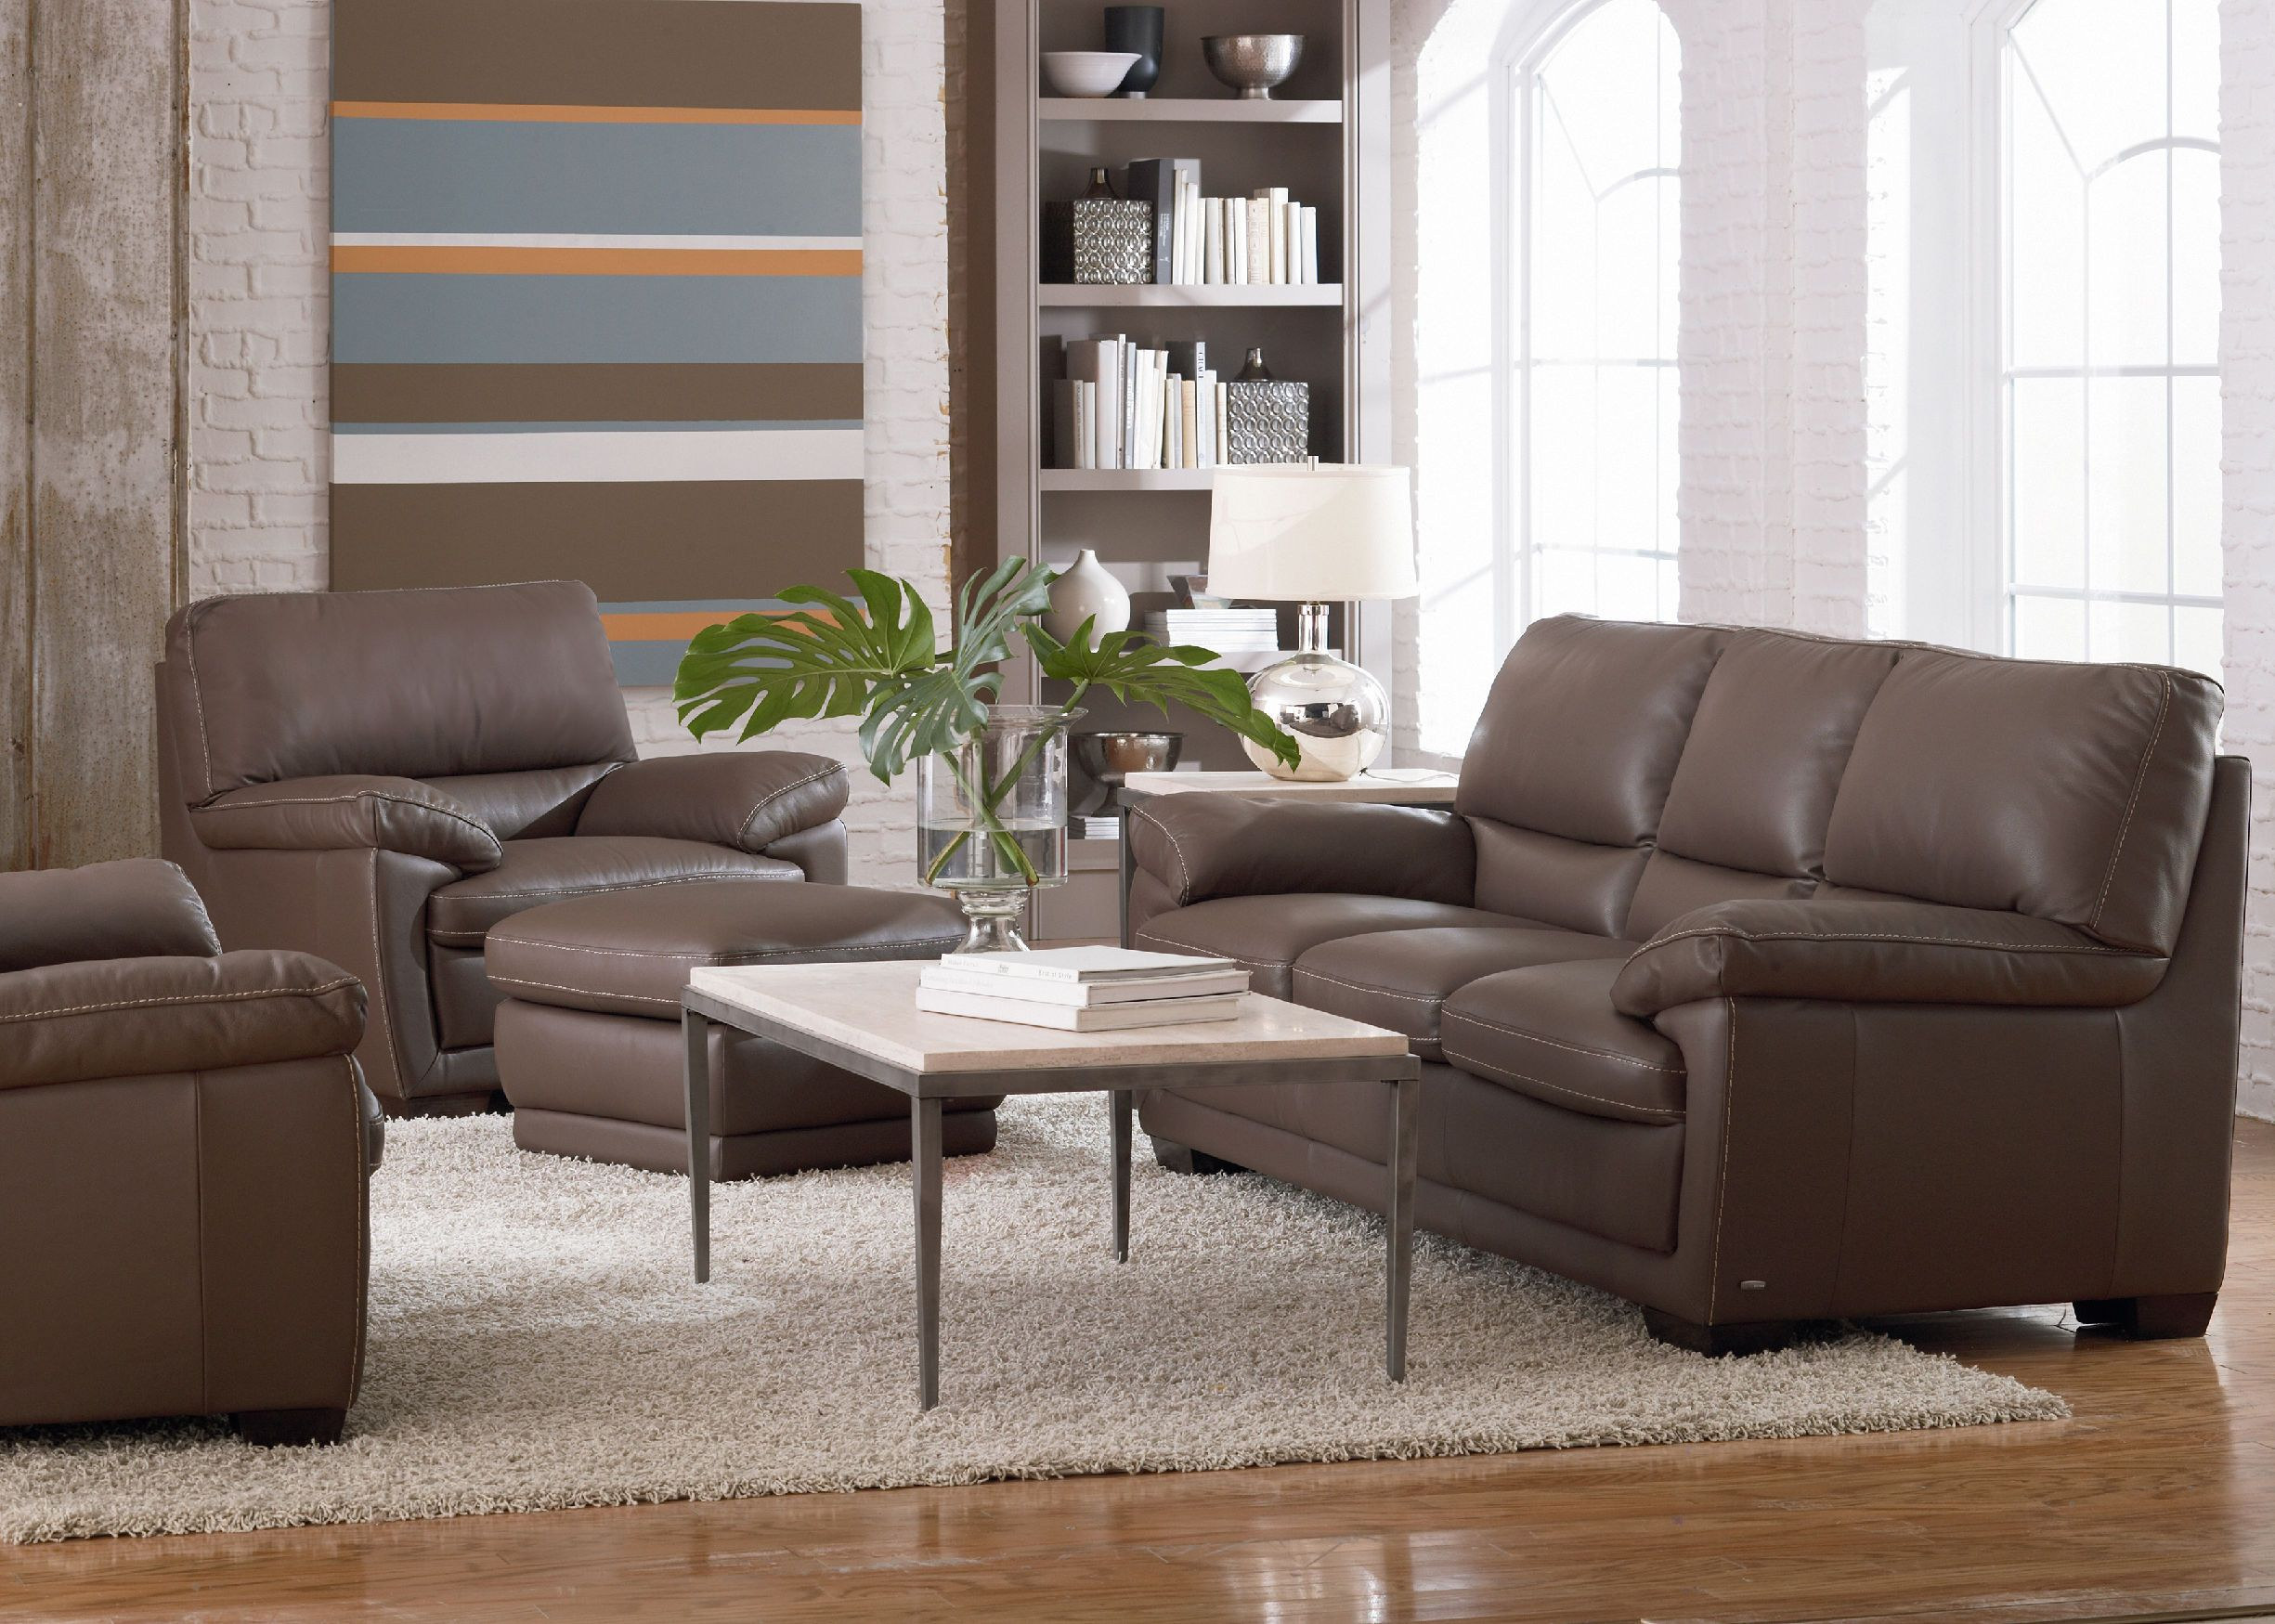 10 Top Taupe Sofa Living Room Ideas